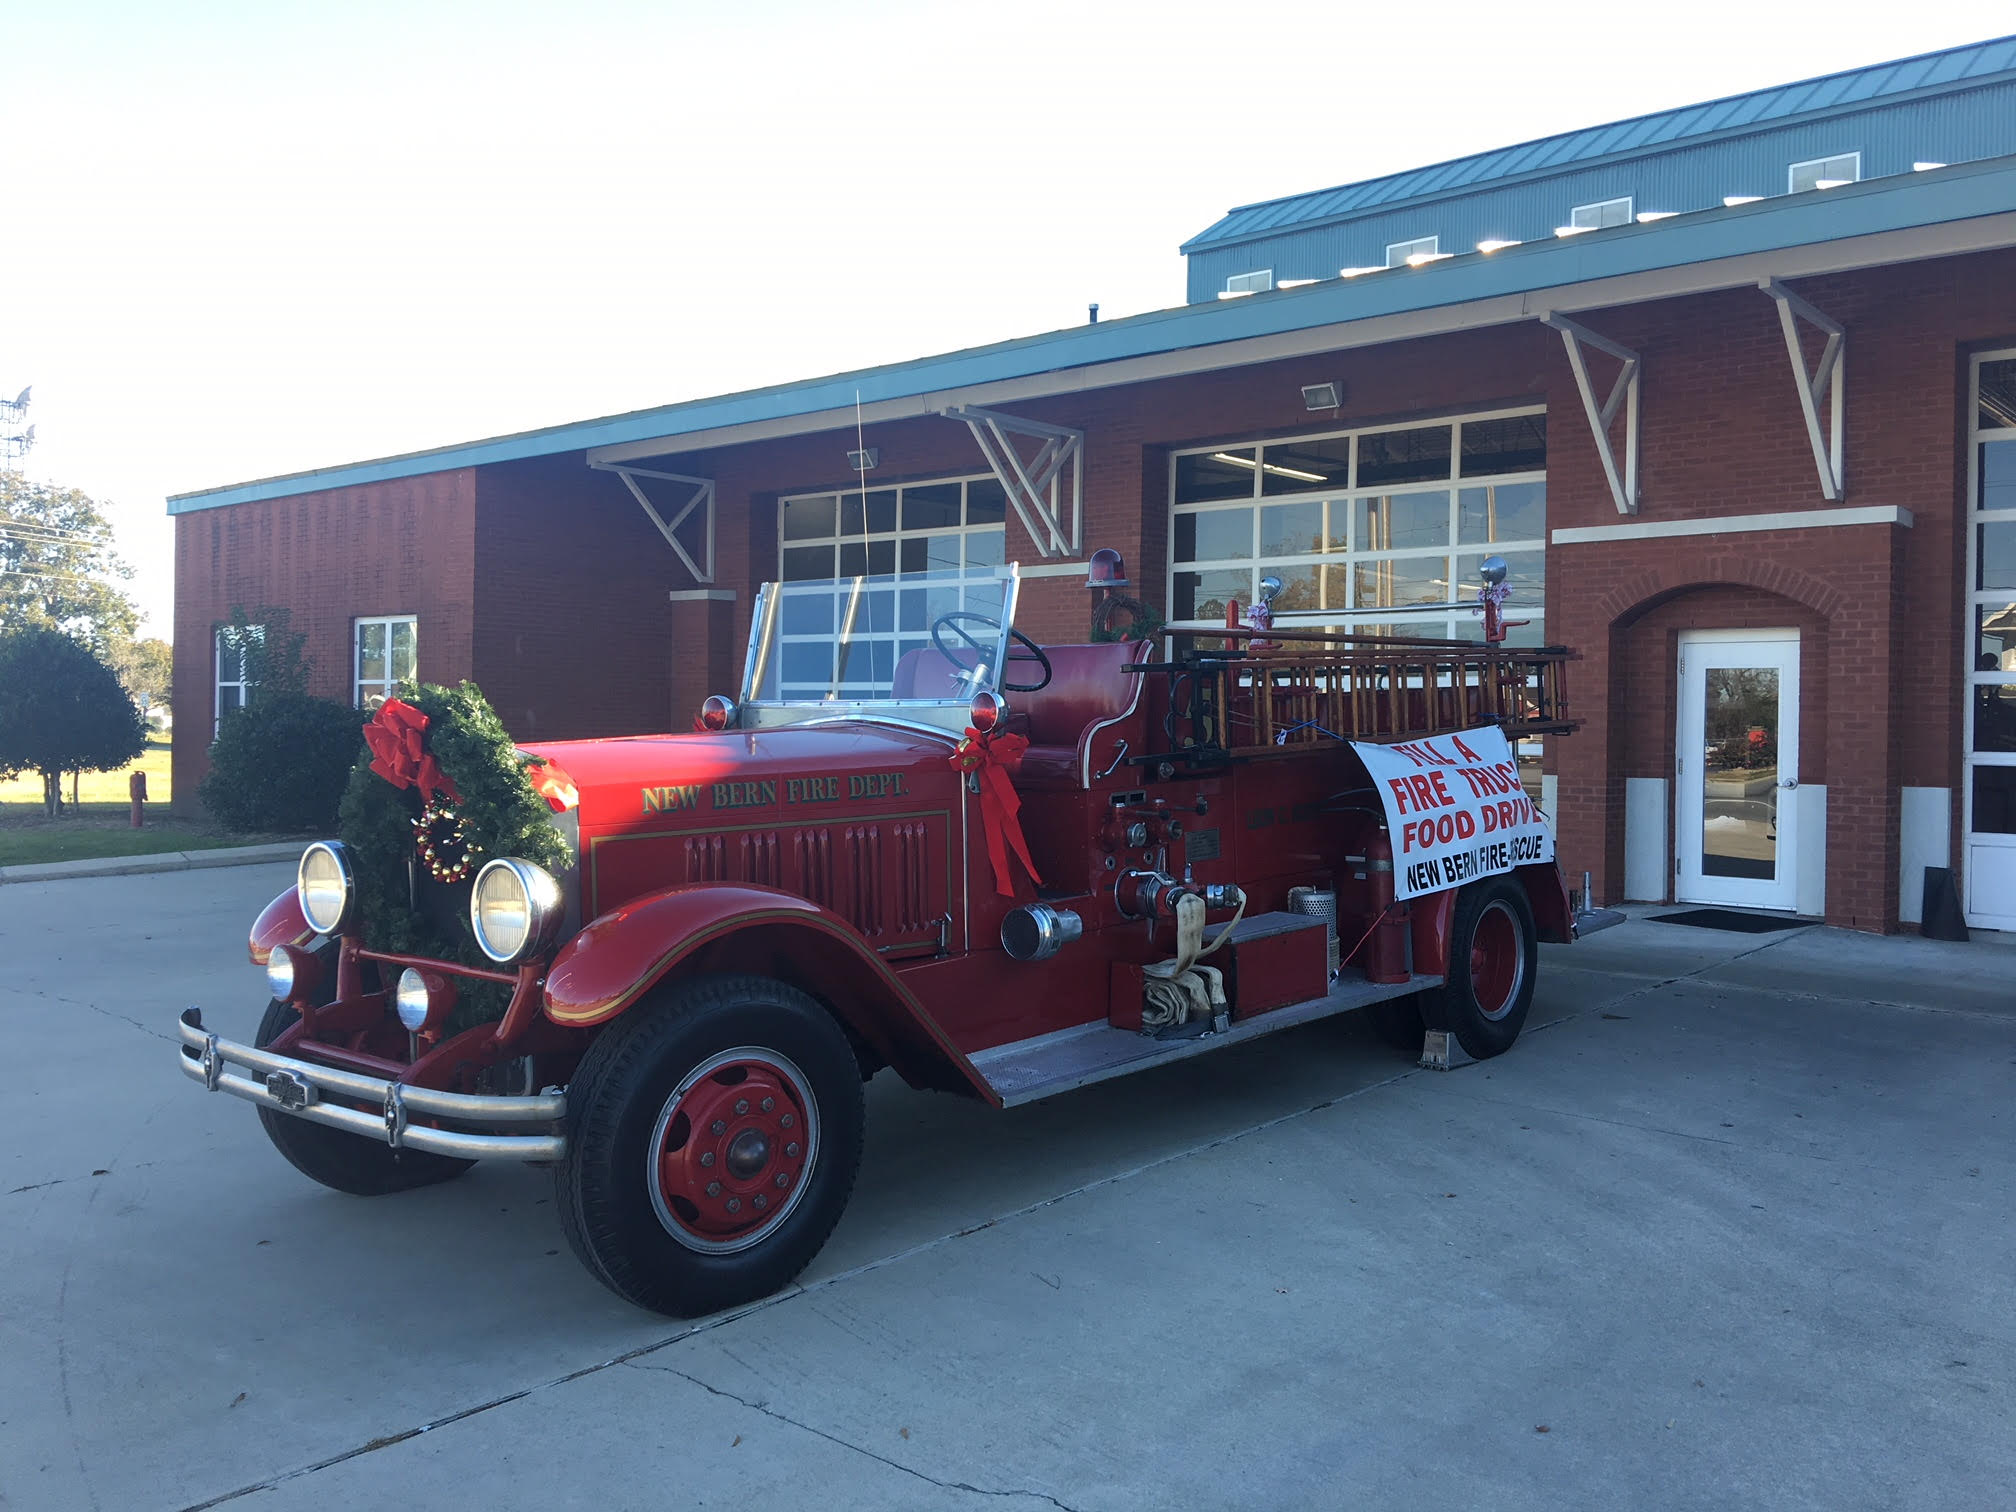 New Bern Fire Department – We re local and we ve got you covered